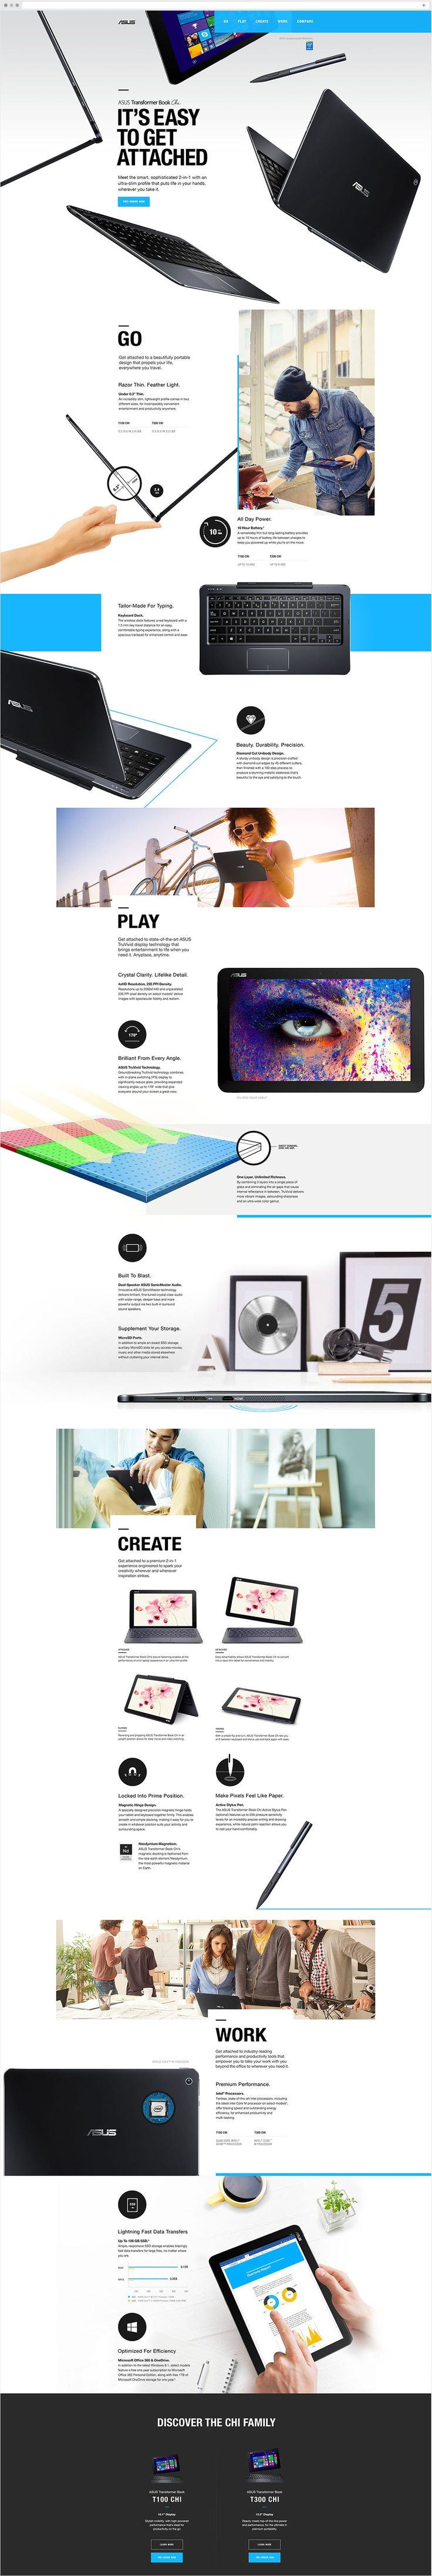 ASUS Transformer Book Chi: Crafting an Engaging Story